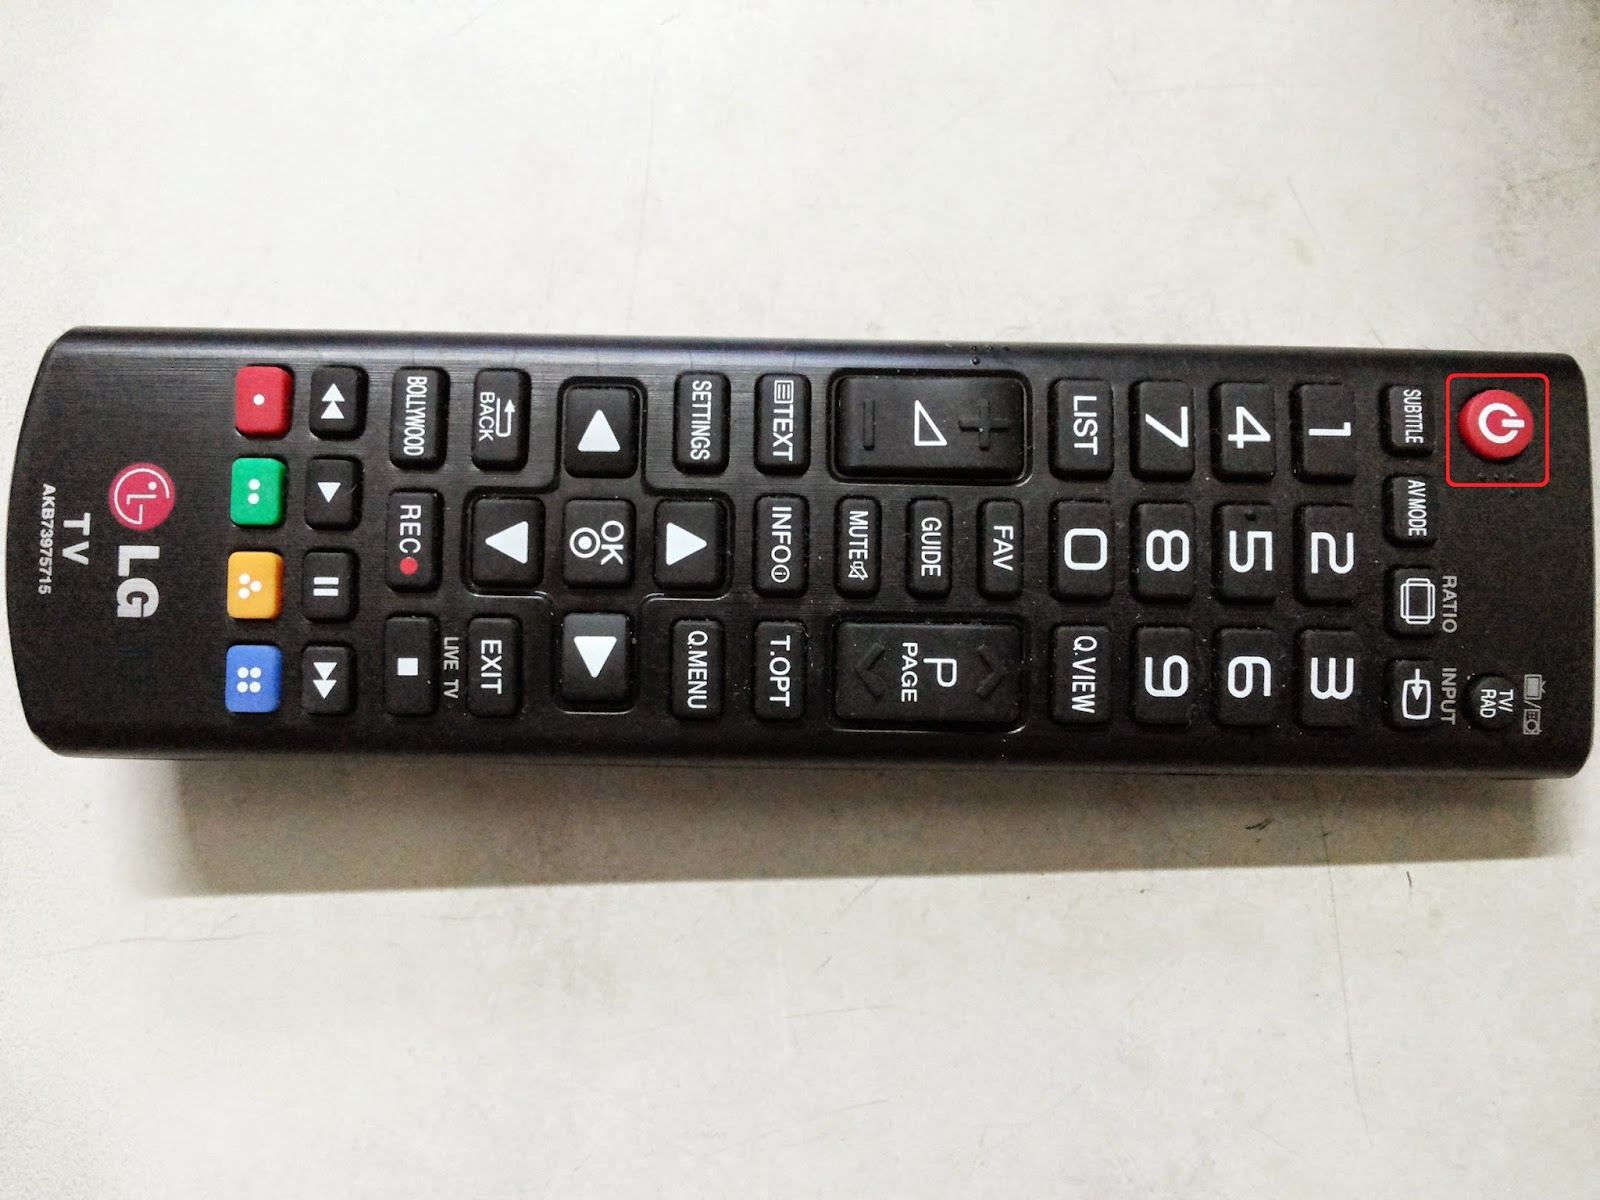 sony tv remote input button. now place the universal remote and your tv in front of each other i.e. their leds should face other. make sure distance between both sony tv input button